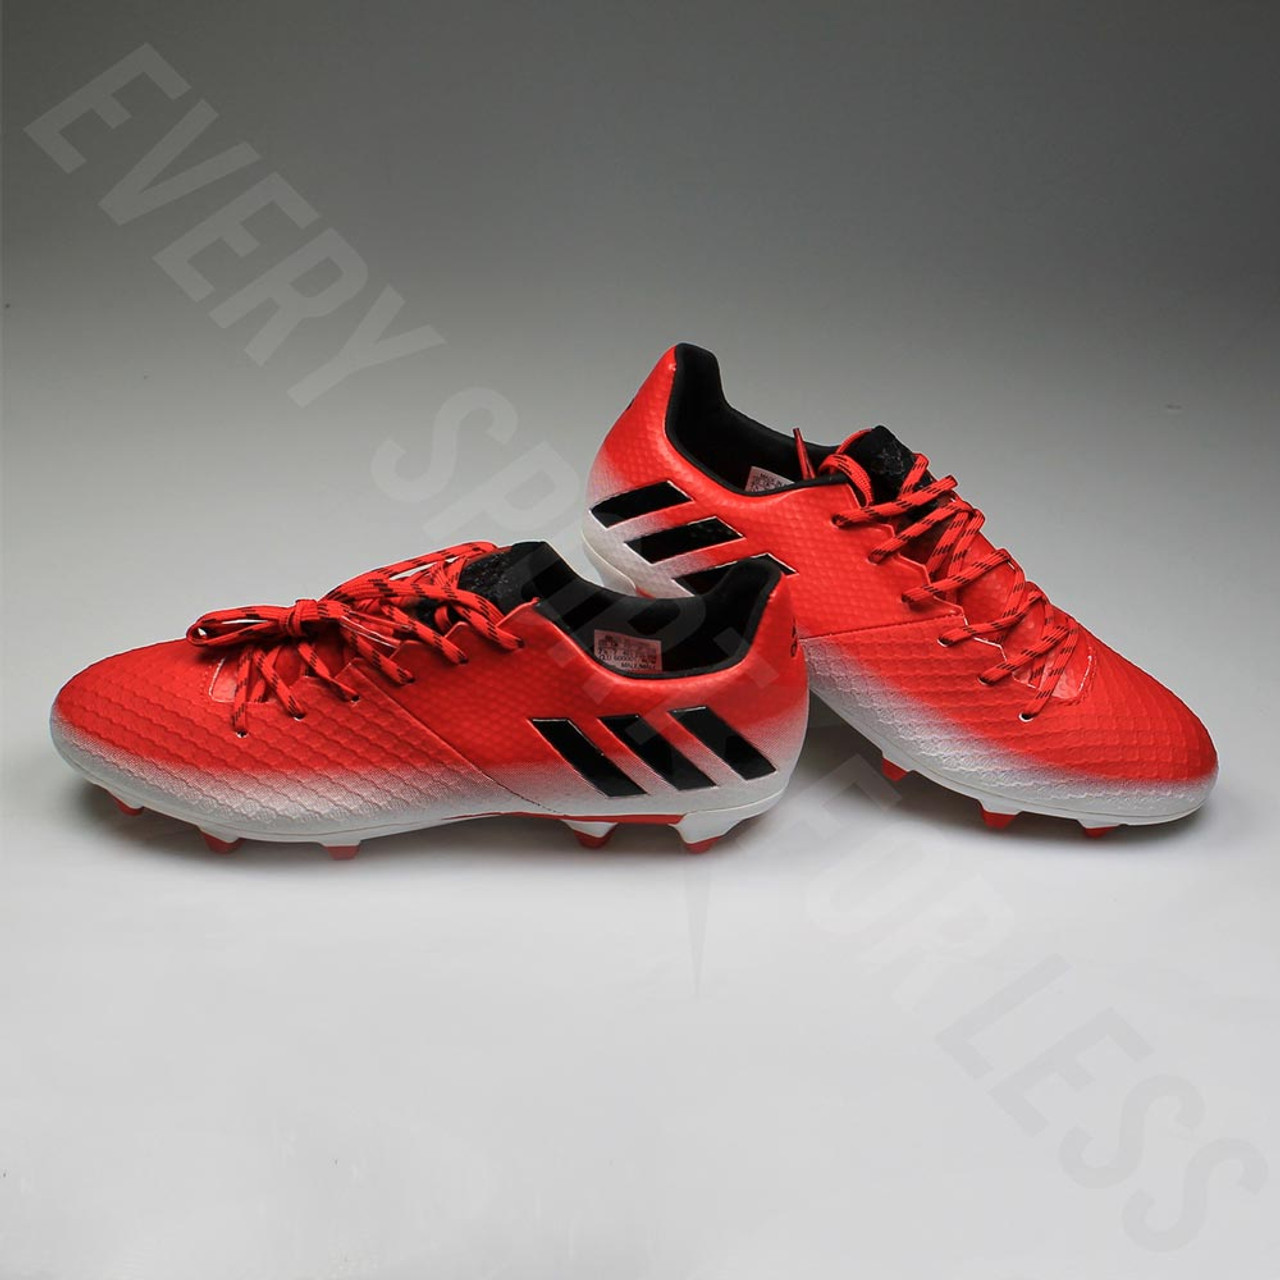 775250874f4 ... Adidas Messi 16.2 FG Men s Soccer Cleats BA9144 - Red